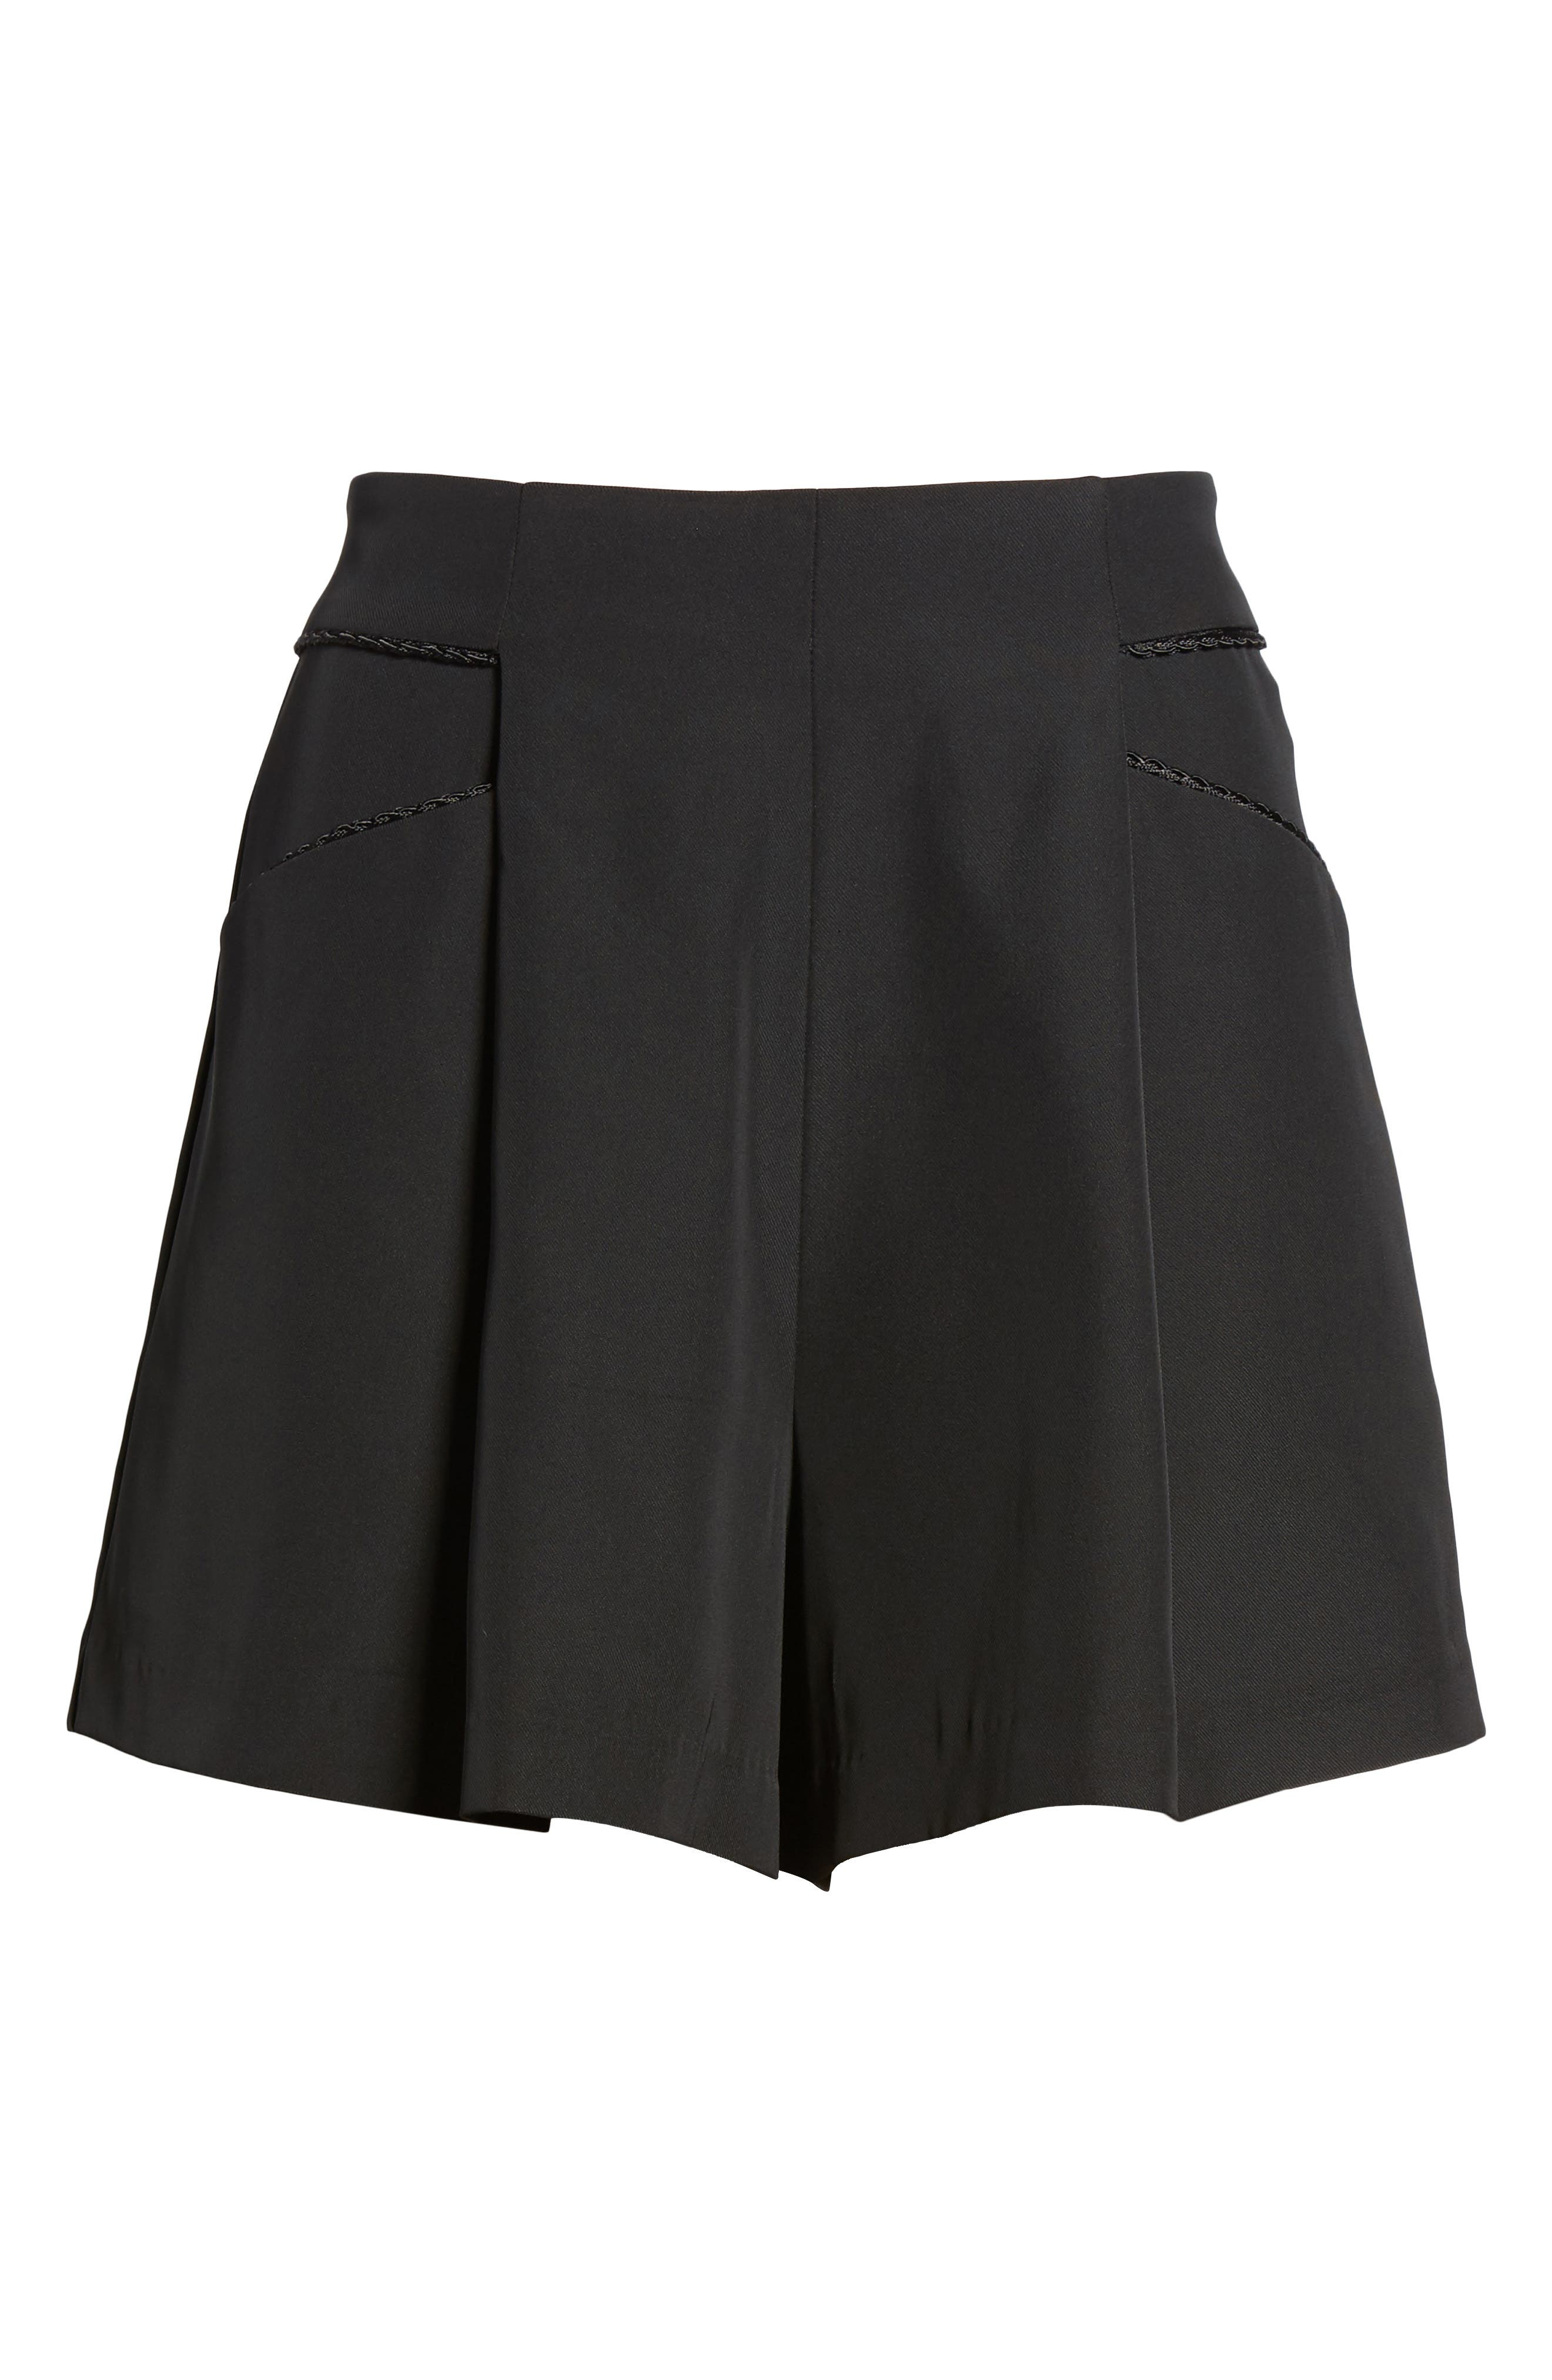 Ceremony High Waist Shorts,                             Alternate thumbnail 6, color,                             Black